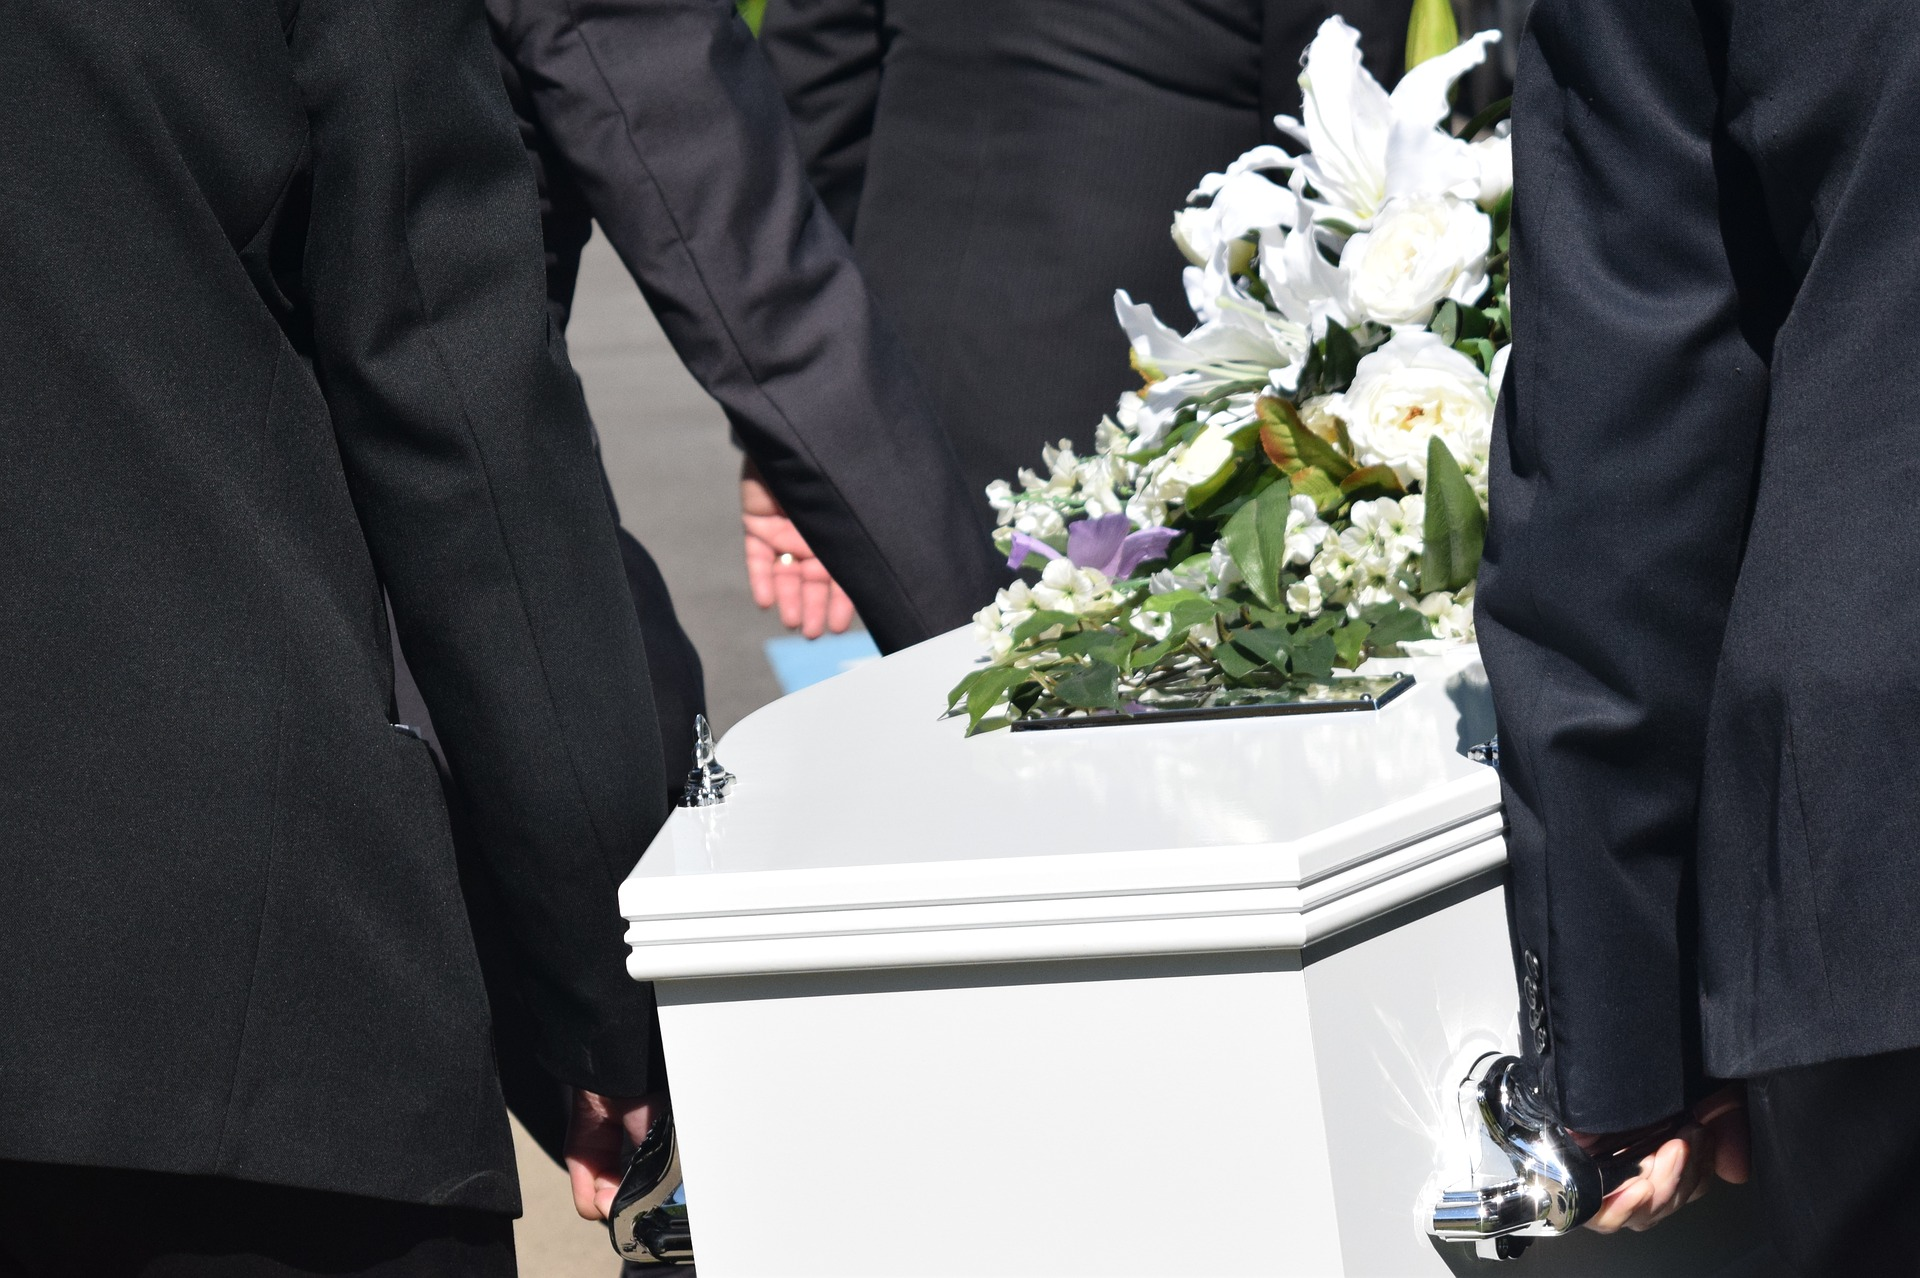 advanced funeral planning services